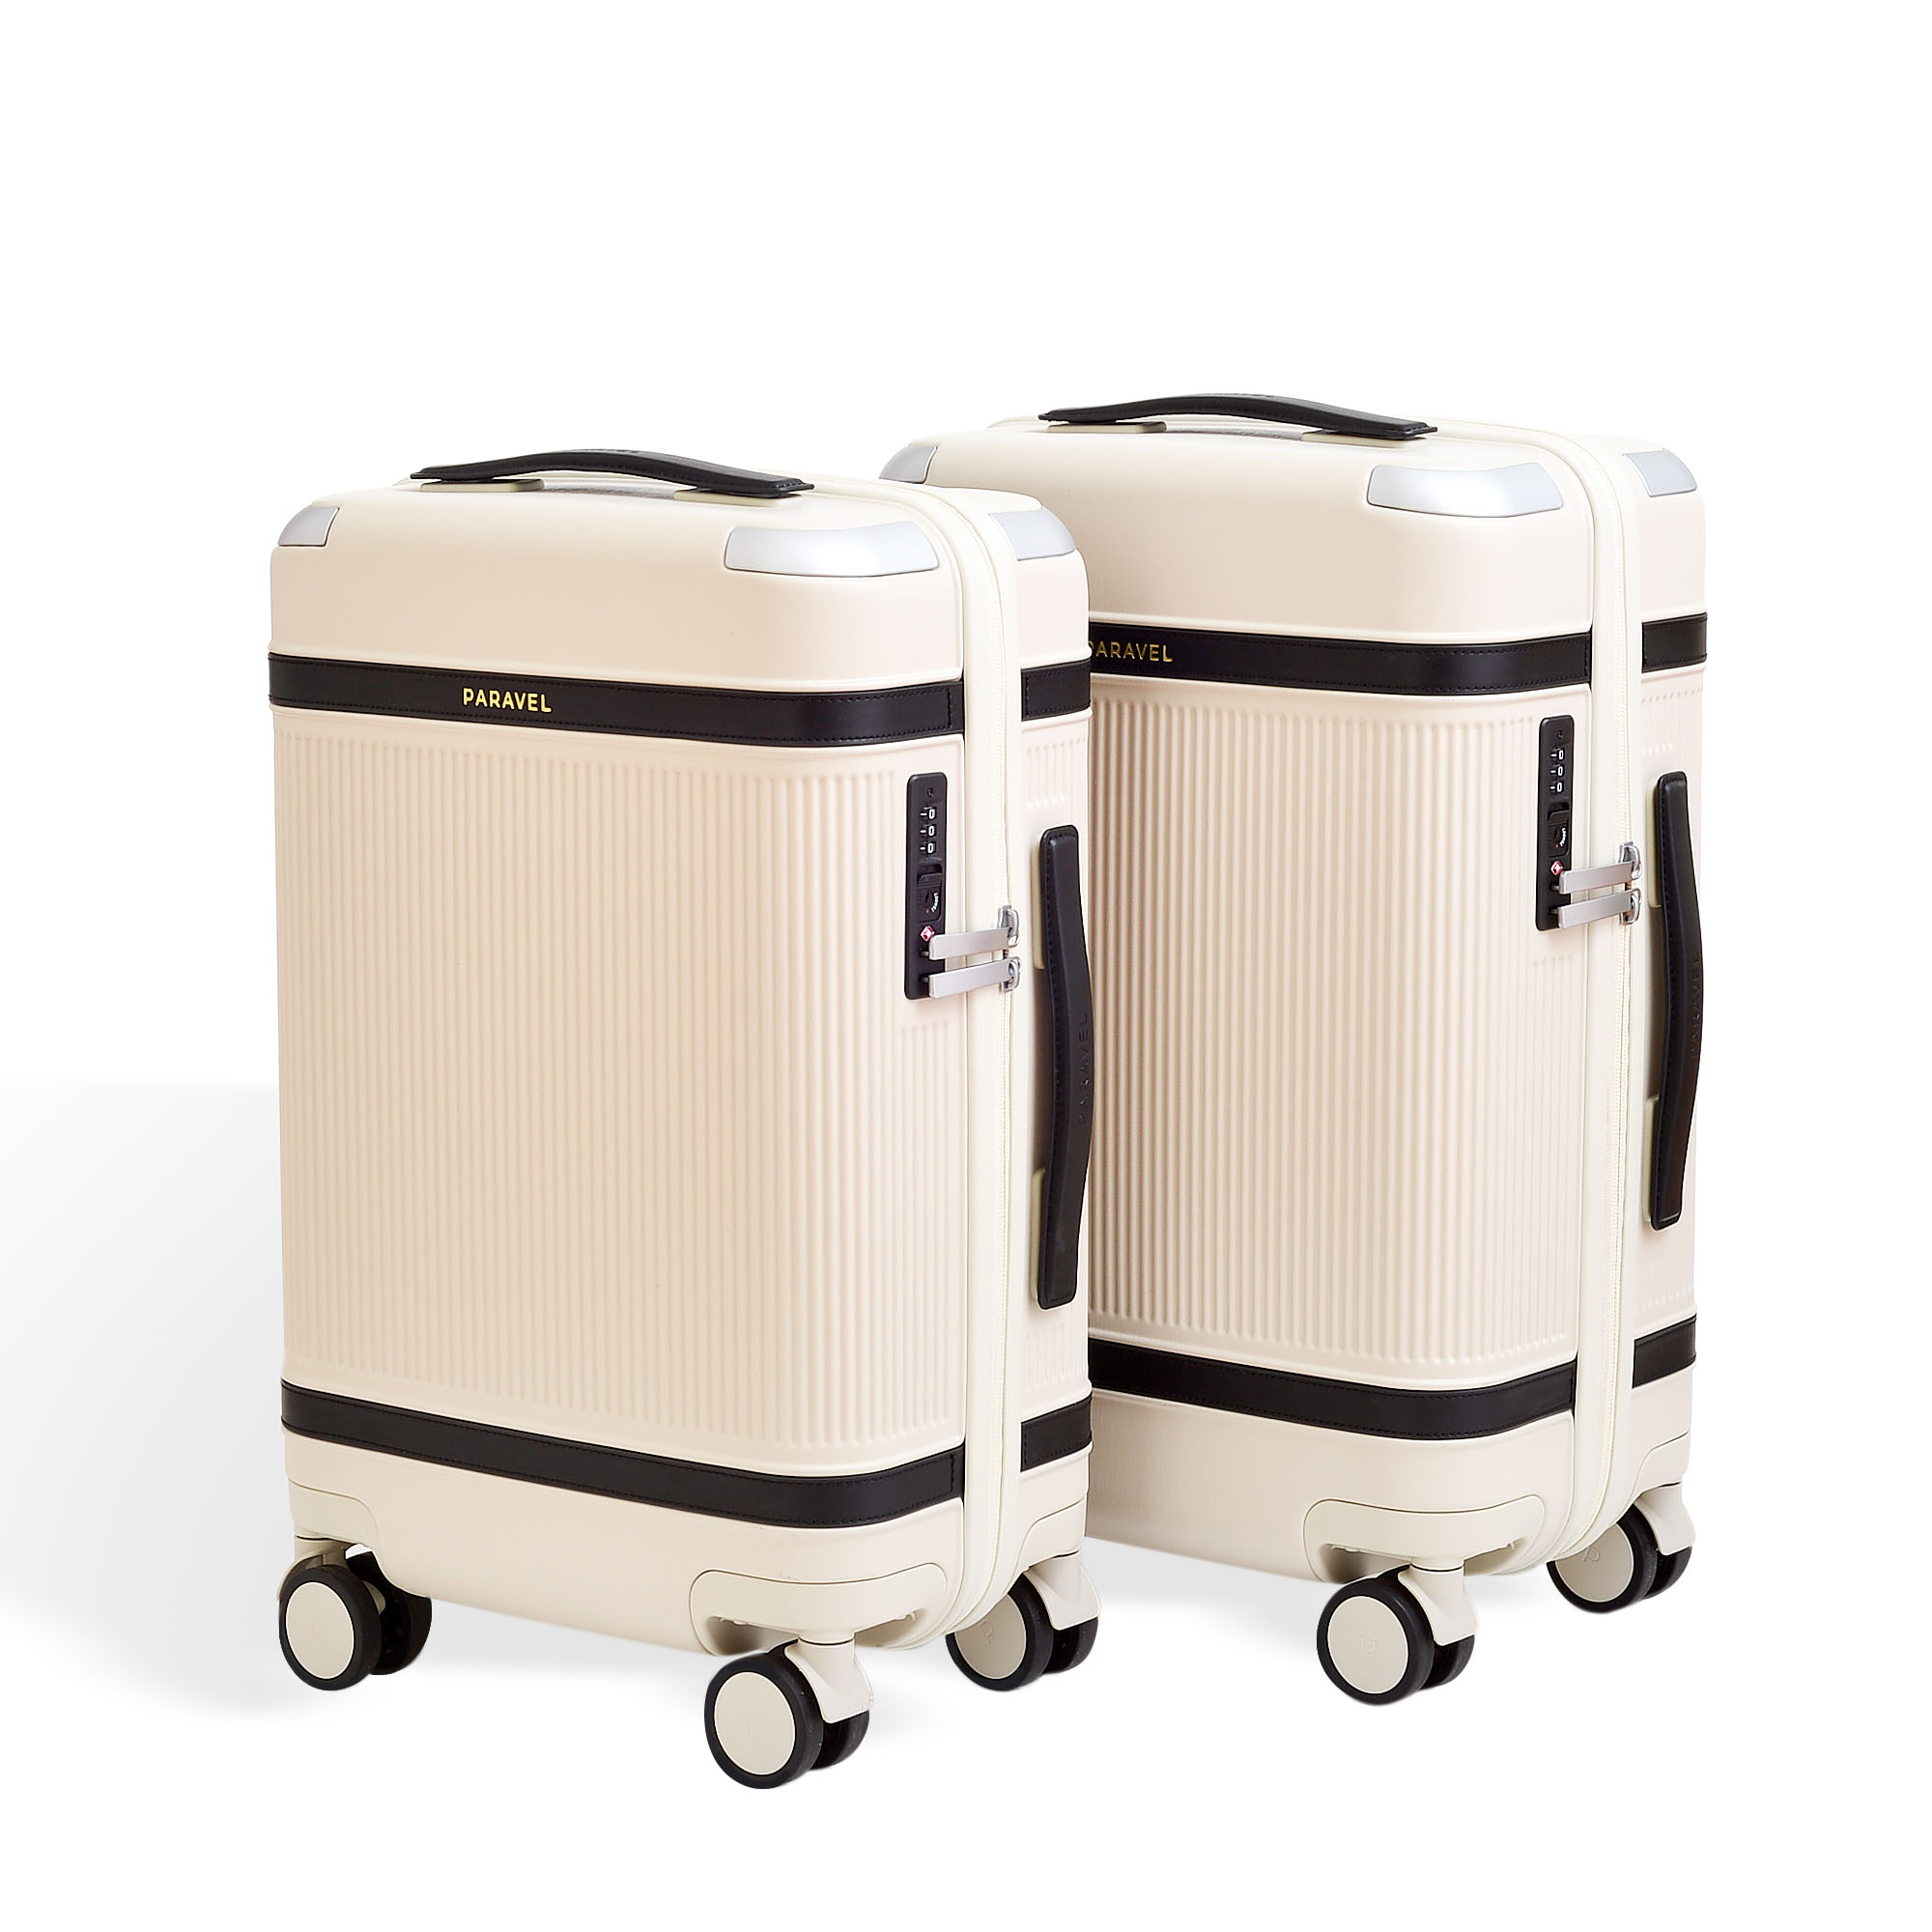 Paravel Aviator Luggage